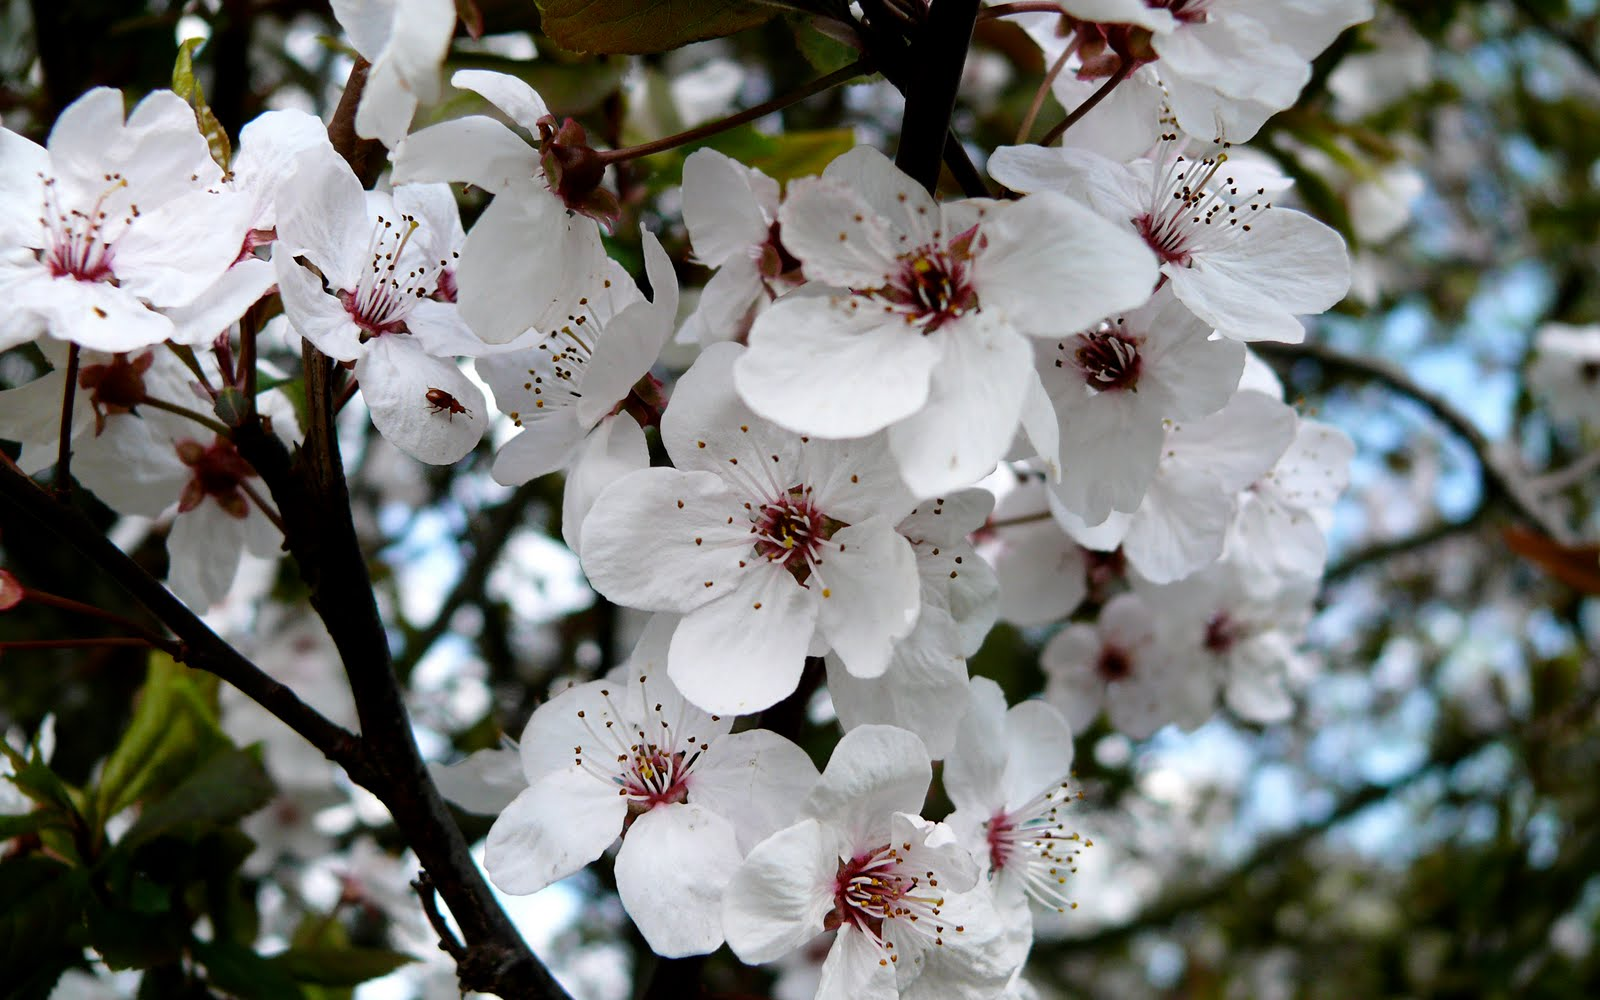 how to get rid of worms on cherry blossom trees